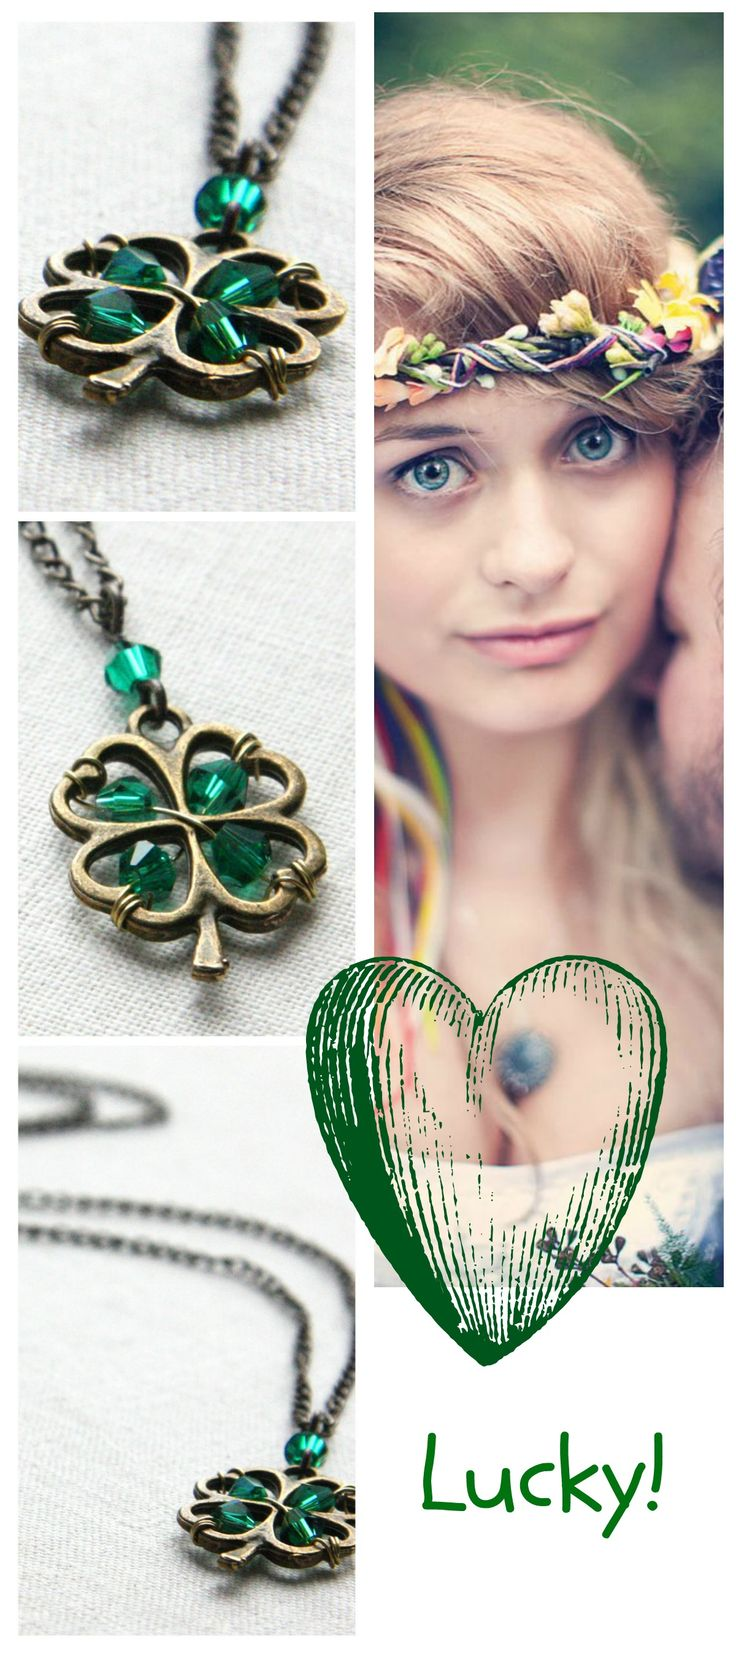 Green lucky shamrock necklace four leaf clover charm emerald green - Boho Jewelry Gift St Patricks Day Necklace 4 Leaf Clover Necklace Four Leaf Clover Pendant Irish Shamrock Good Luck Green Crystal Necklace